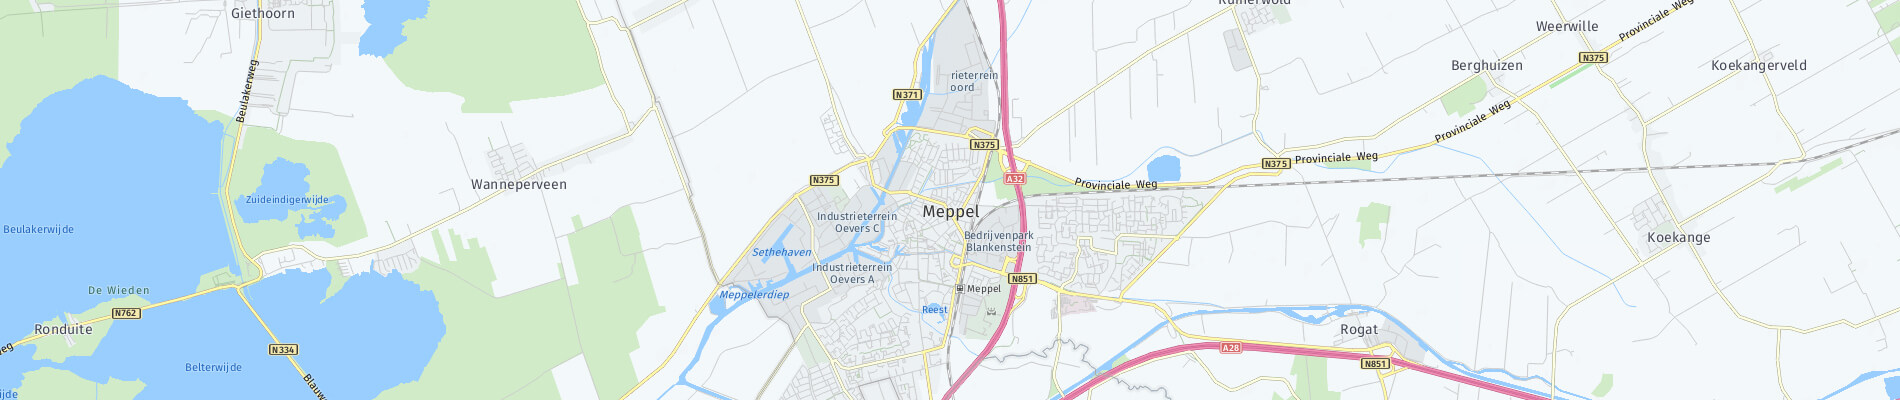 assets/images/cities/meppel.jpg